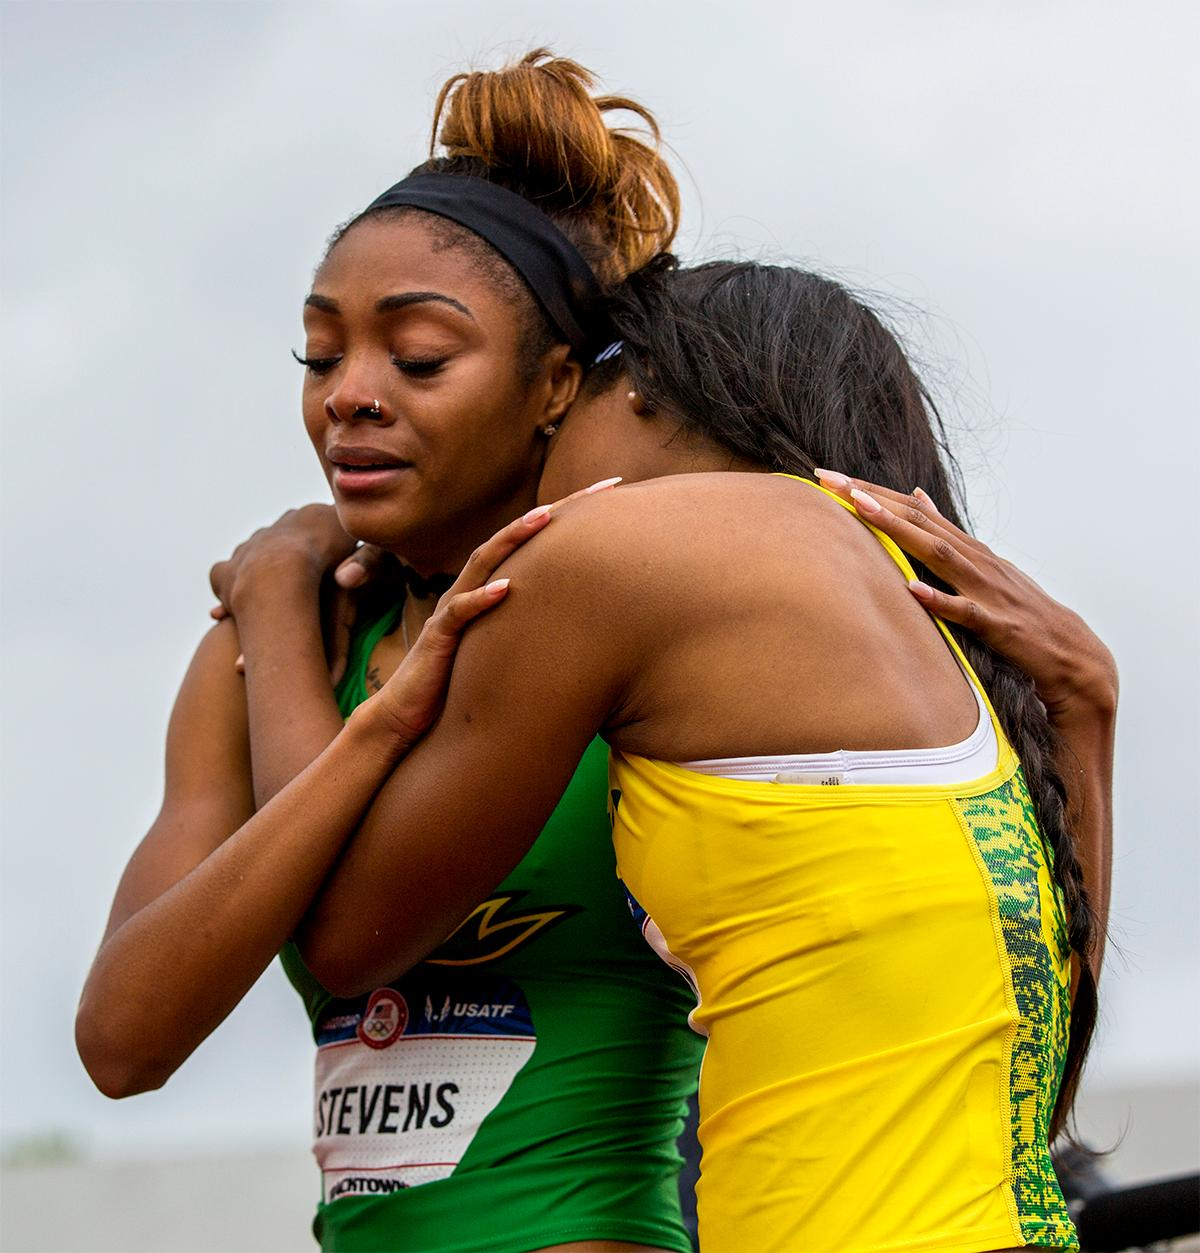 Oregon's Deajah Stevens is congratulated by teammate Arianna Washington after finishing second in the 200 meter in a time of 22.30 and punching her ticket for Rio. Photo by August Frank, Oregon News Lab